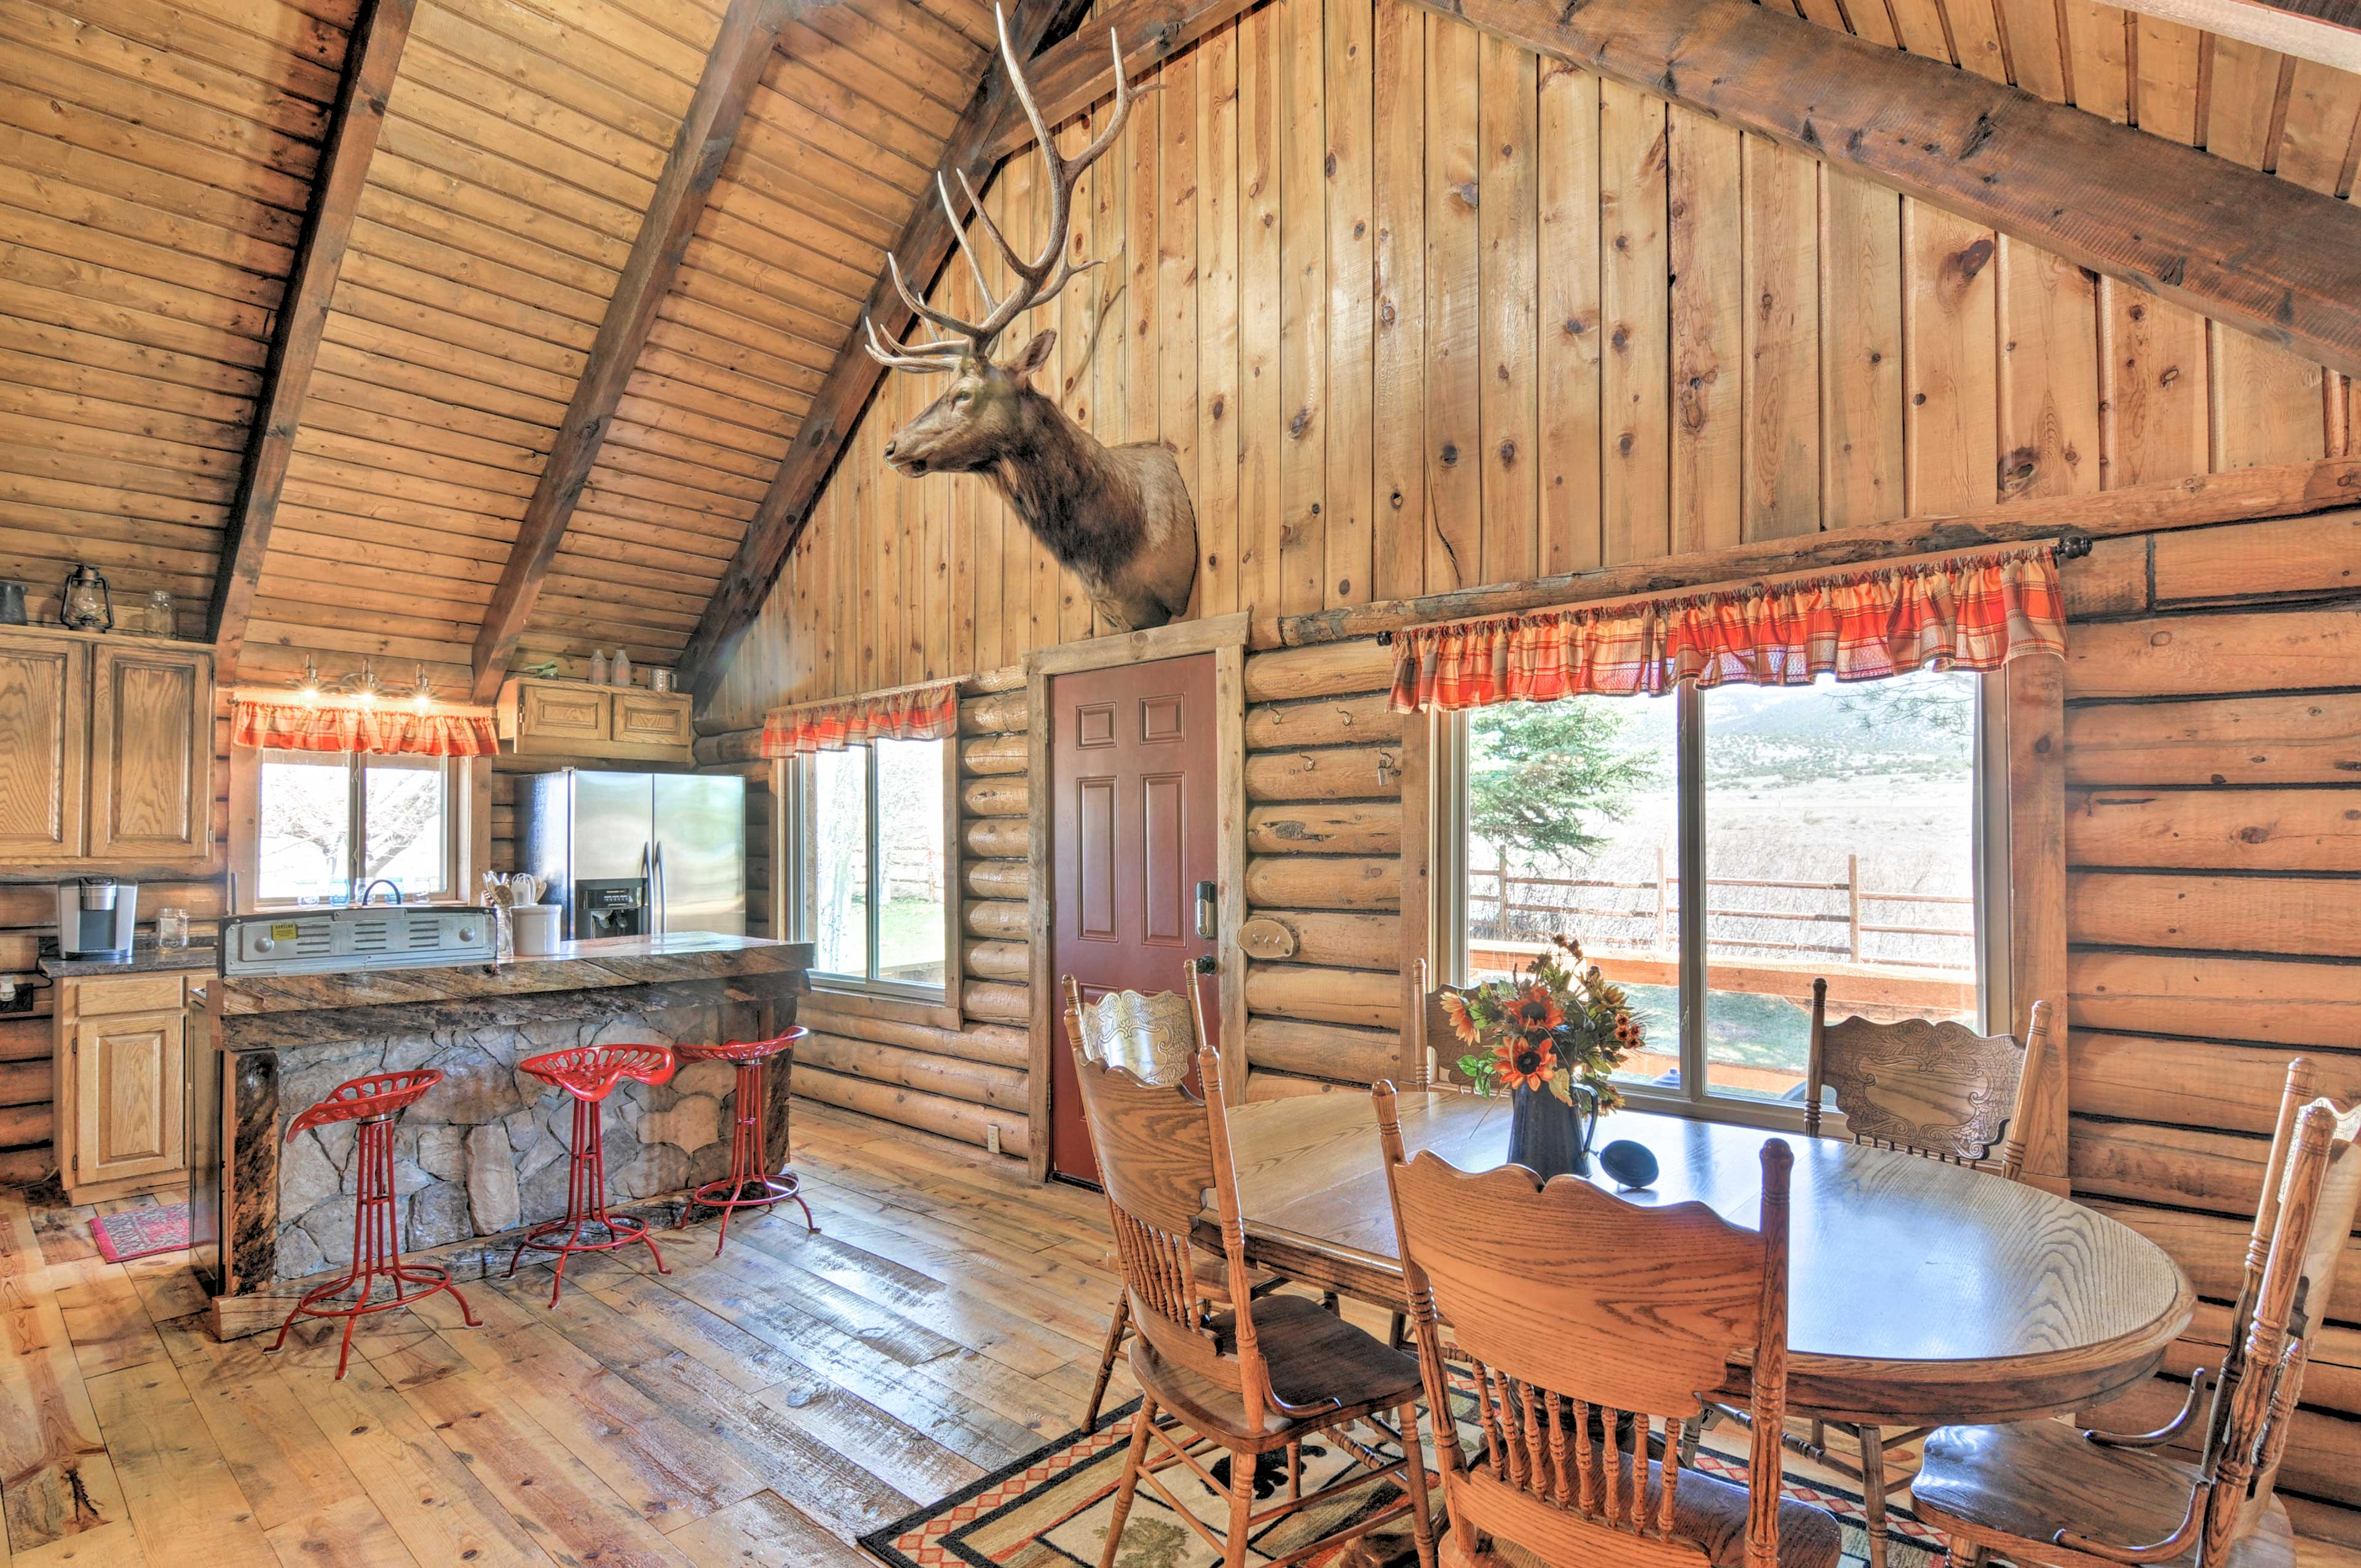 Step inside the 2,500-square-foot cabin!